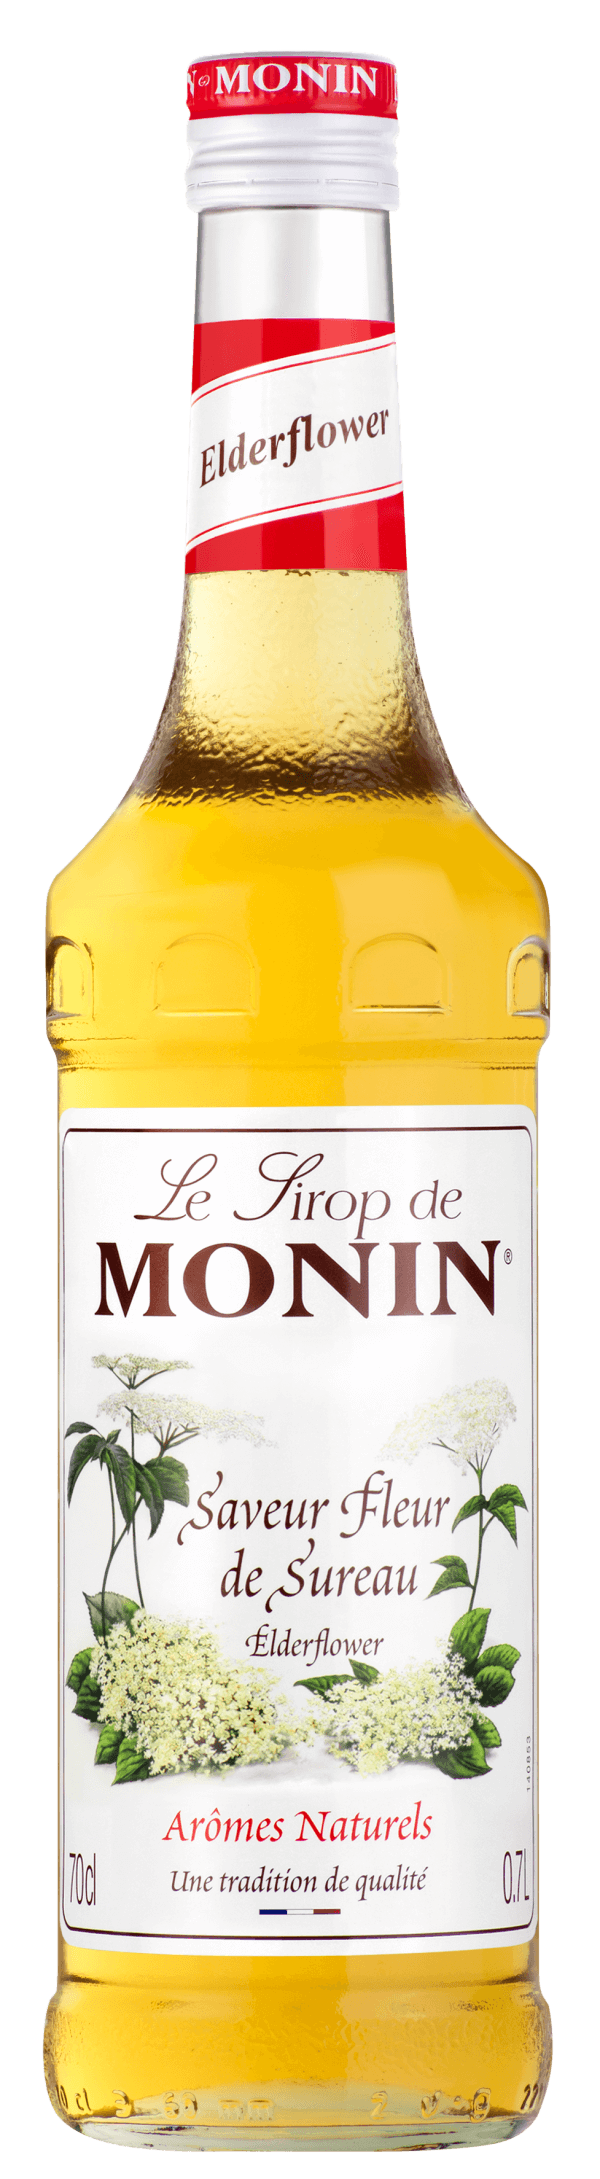 Monin elderflower-HD